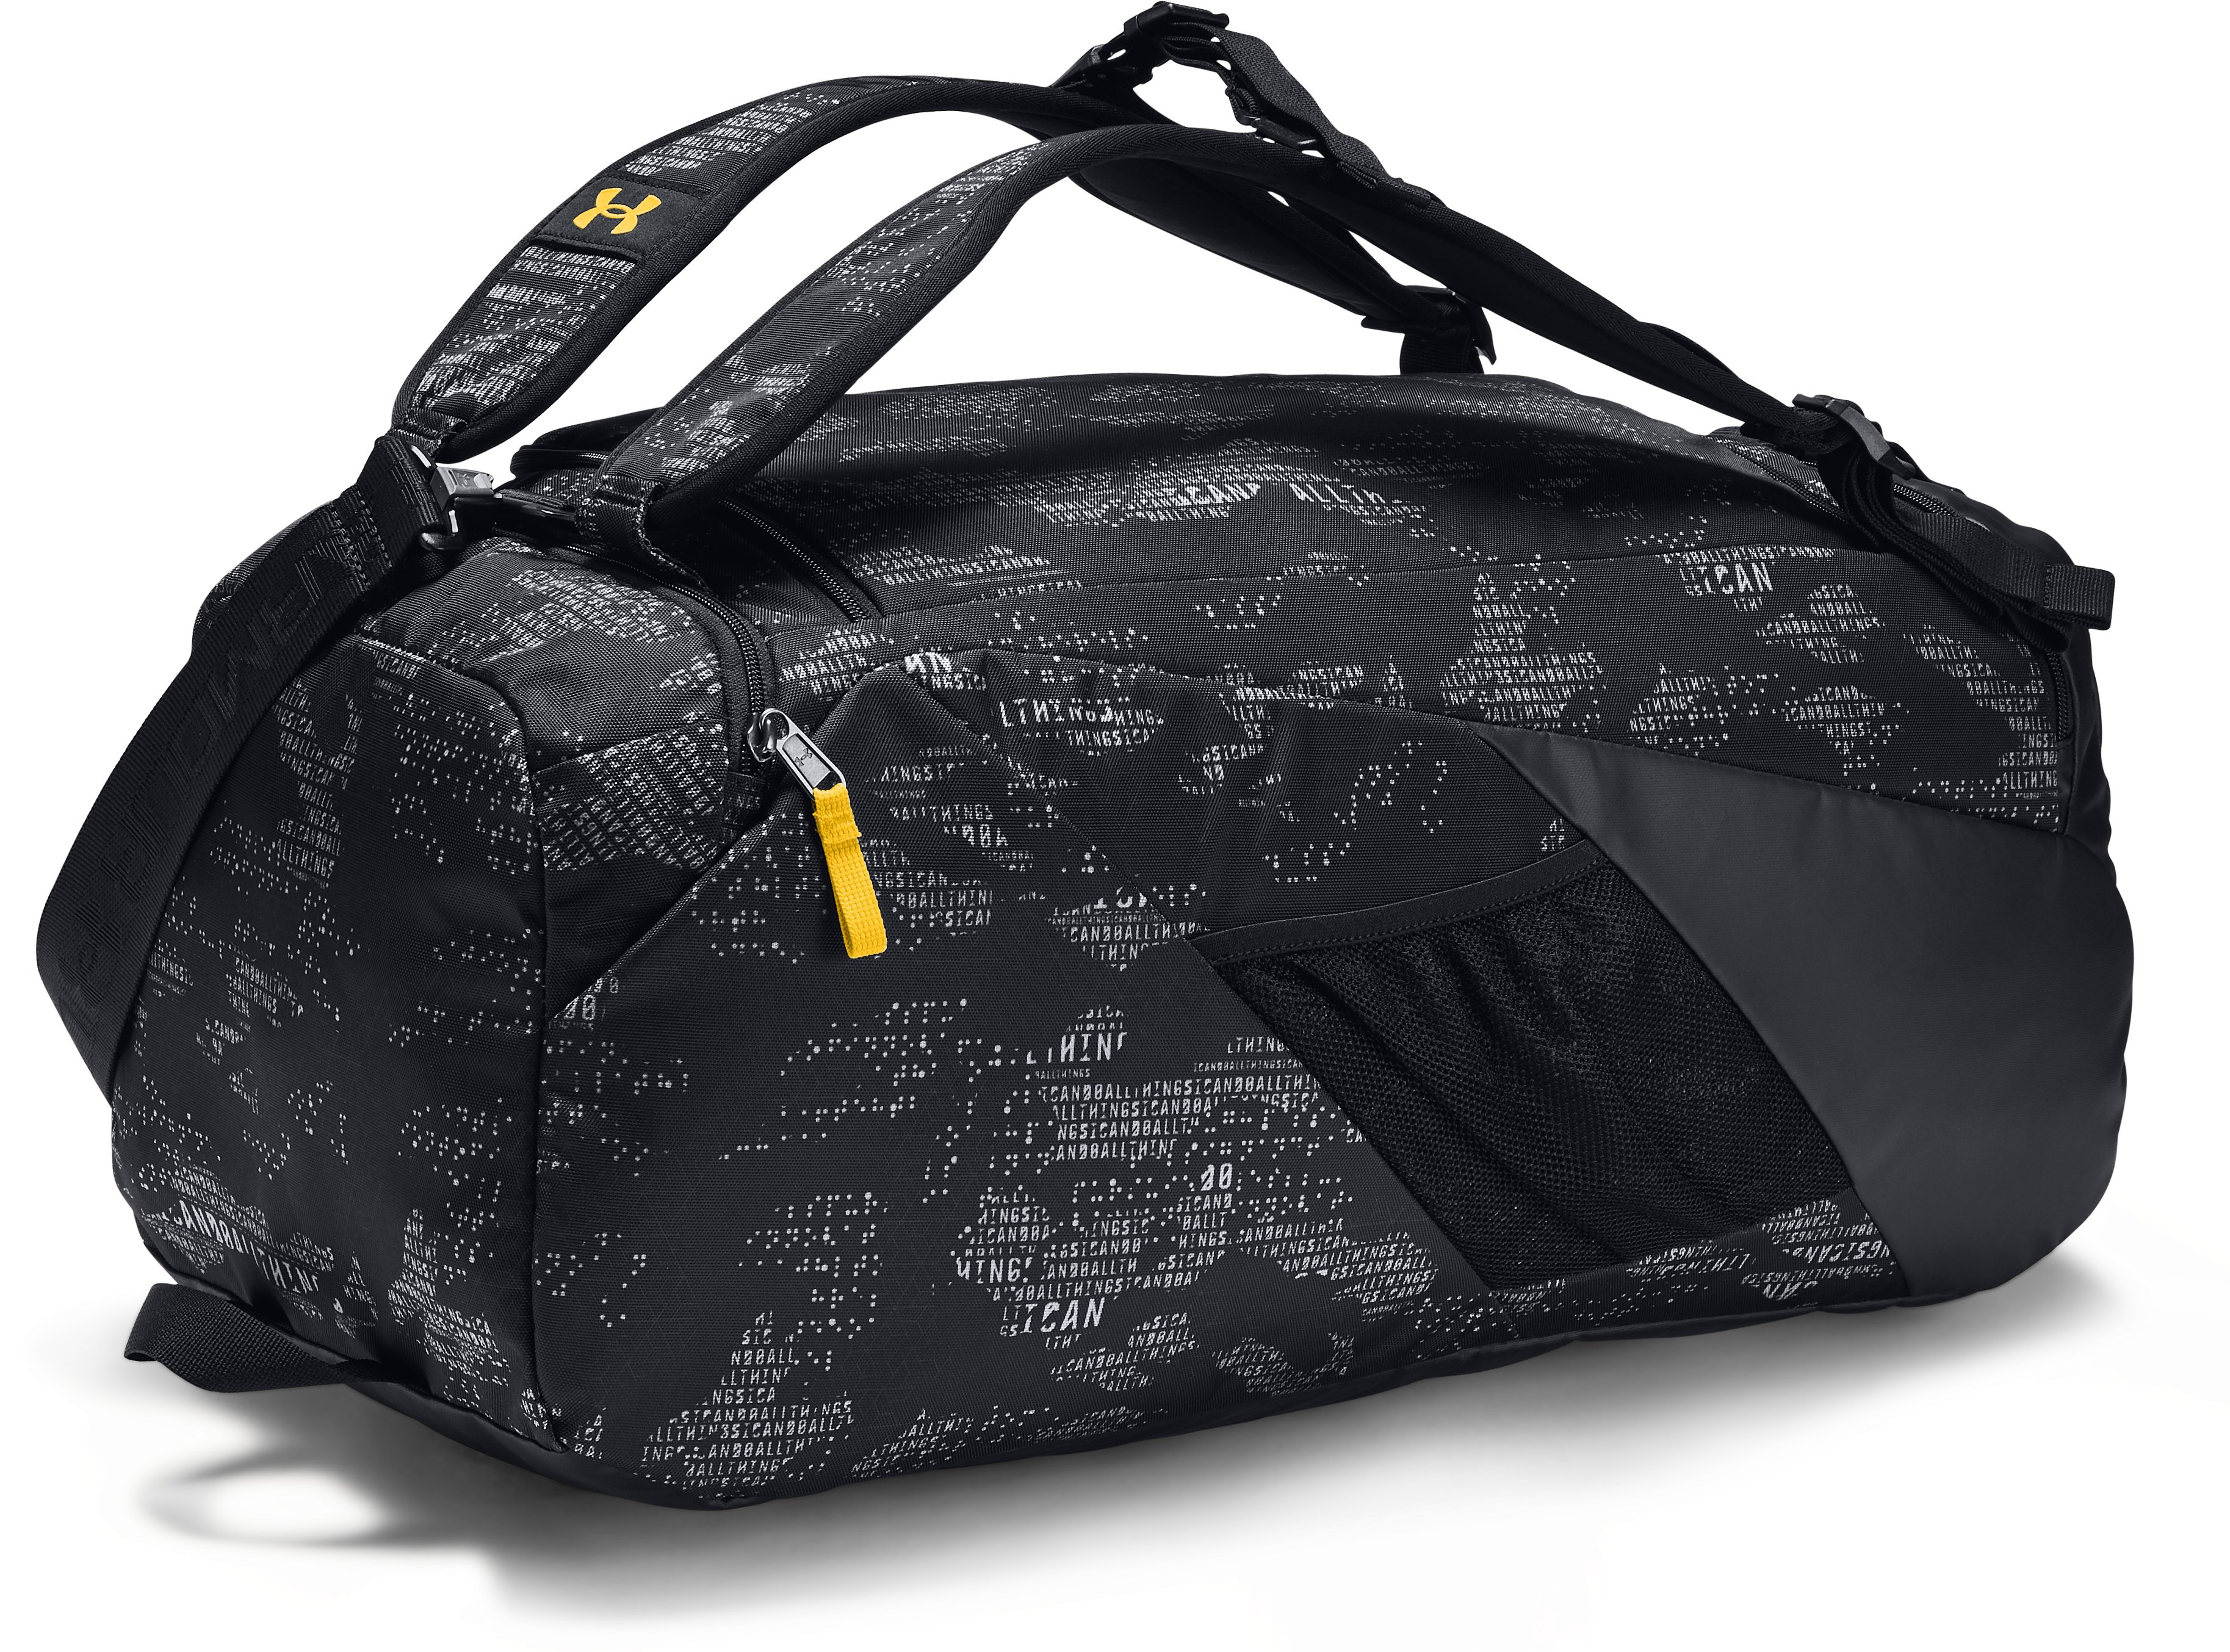 SC30 Contain 4.0 Backpack Duffle, Steel,